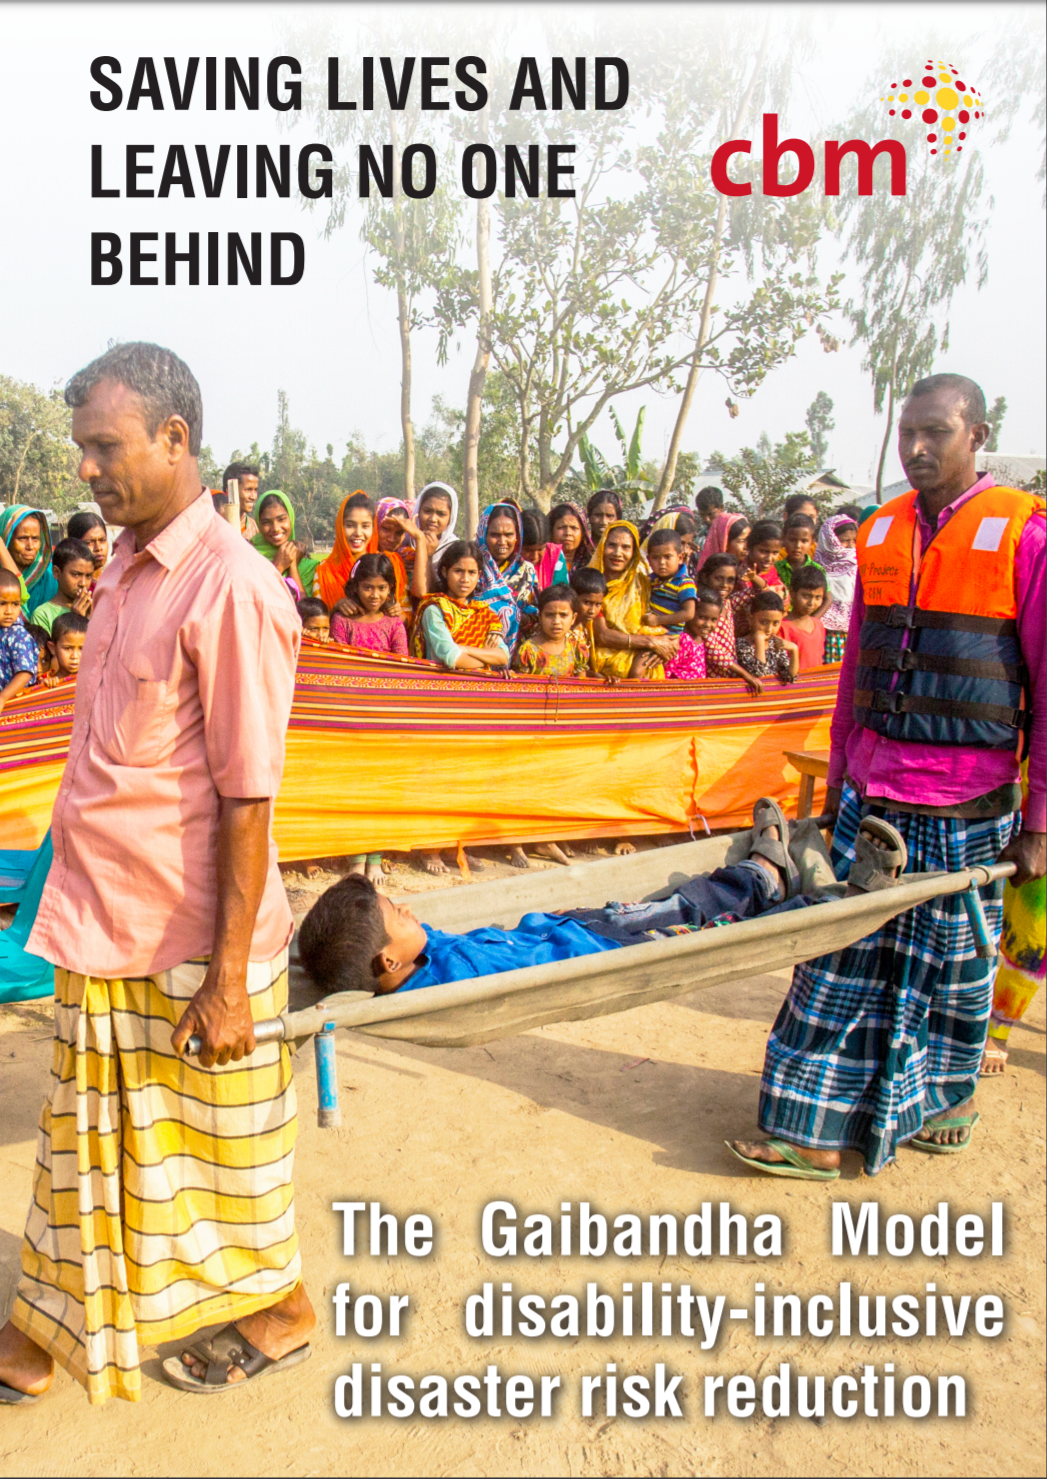 """Cover of the publication entitled """"Saving Lives and Leaving No One Behind: The Gaibandha Model for disability-inclusive disaster risk reduction"""". The picture on the cover shows two people carrying someone on a stretcher. More people are behind them, watching."""